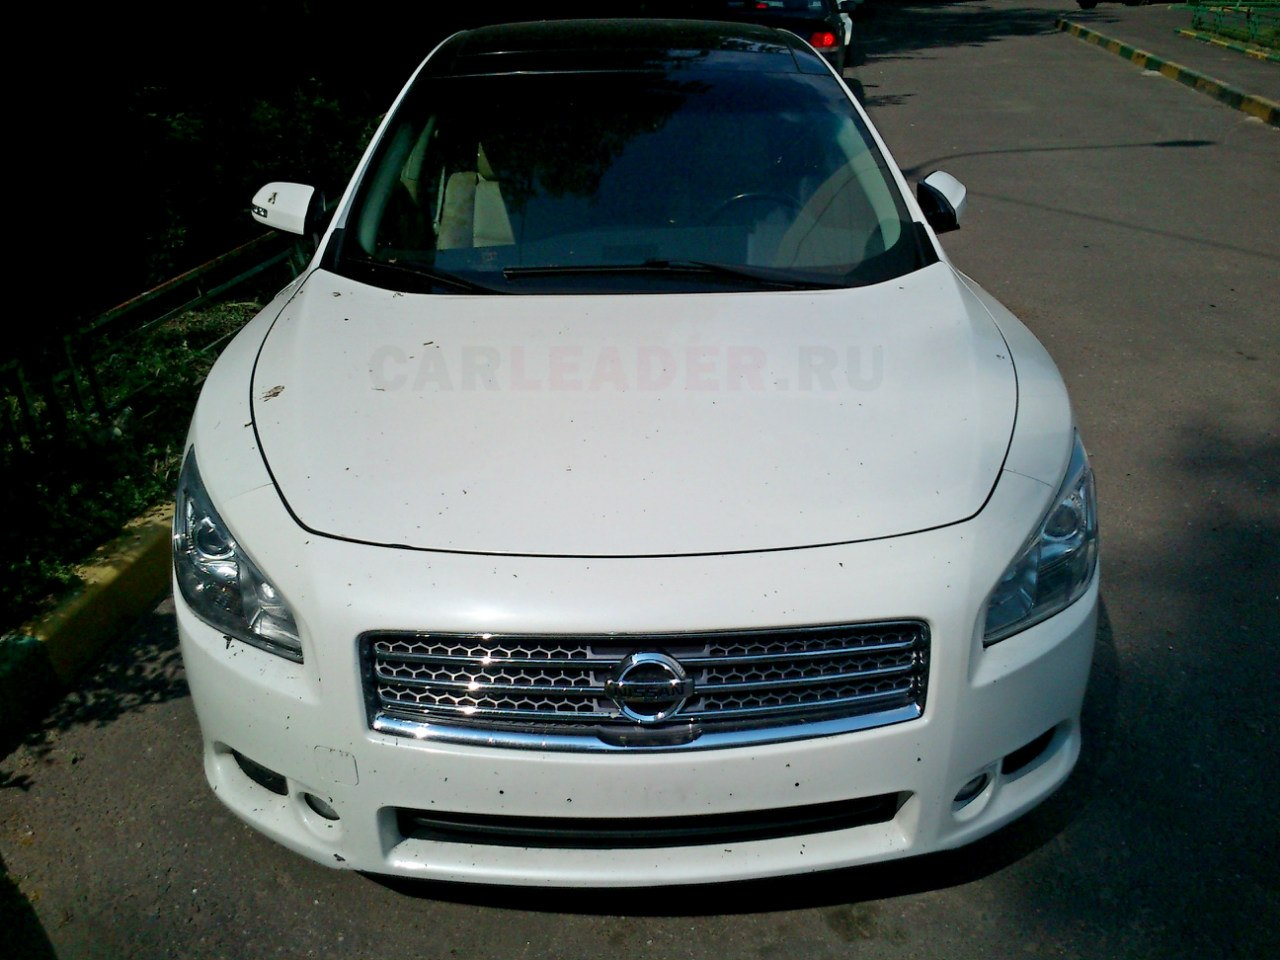 2012 nissan maxima vii pictures information and specs. Black Bedroom Furniture Sets. Home Design Ideas